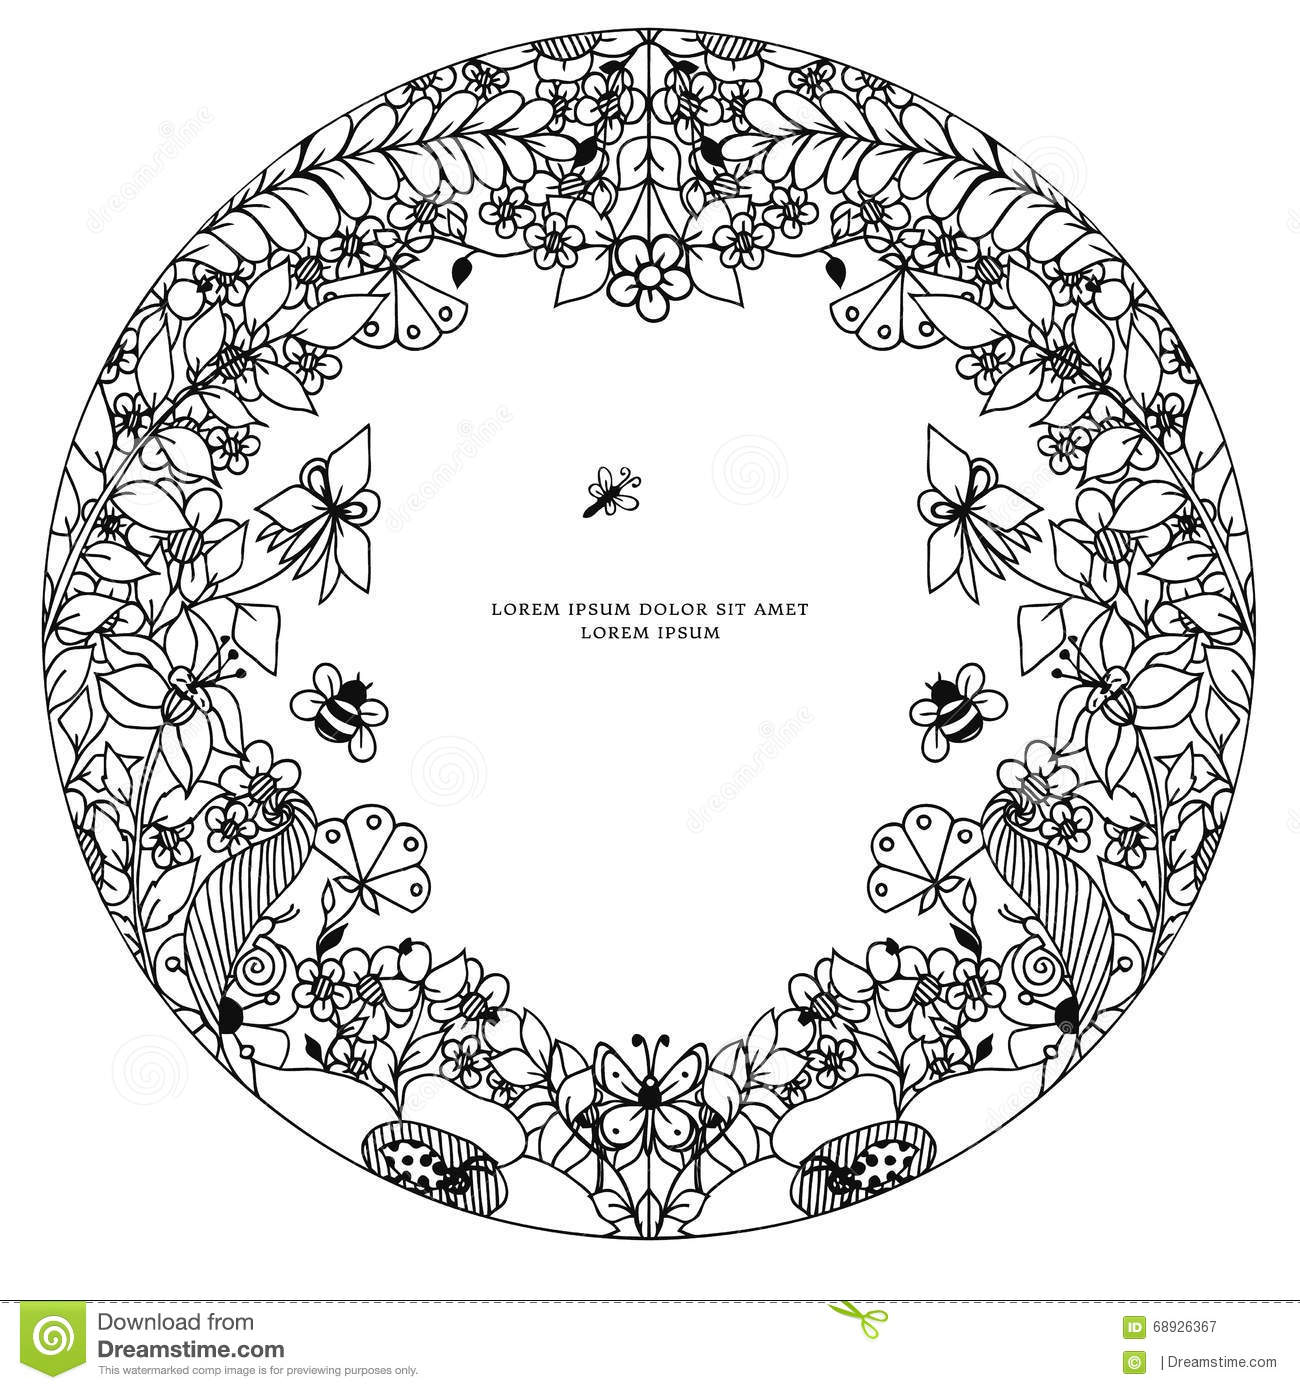 vector illustration zentangl round floral frame  symmetry  doodle flowers  bee  butterfly zenart